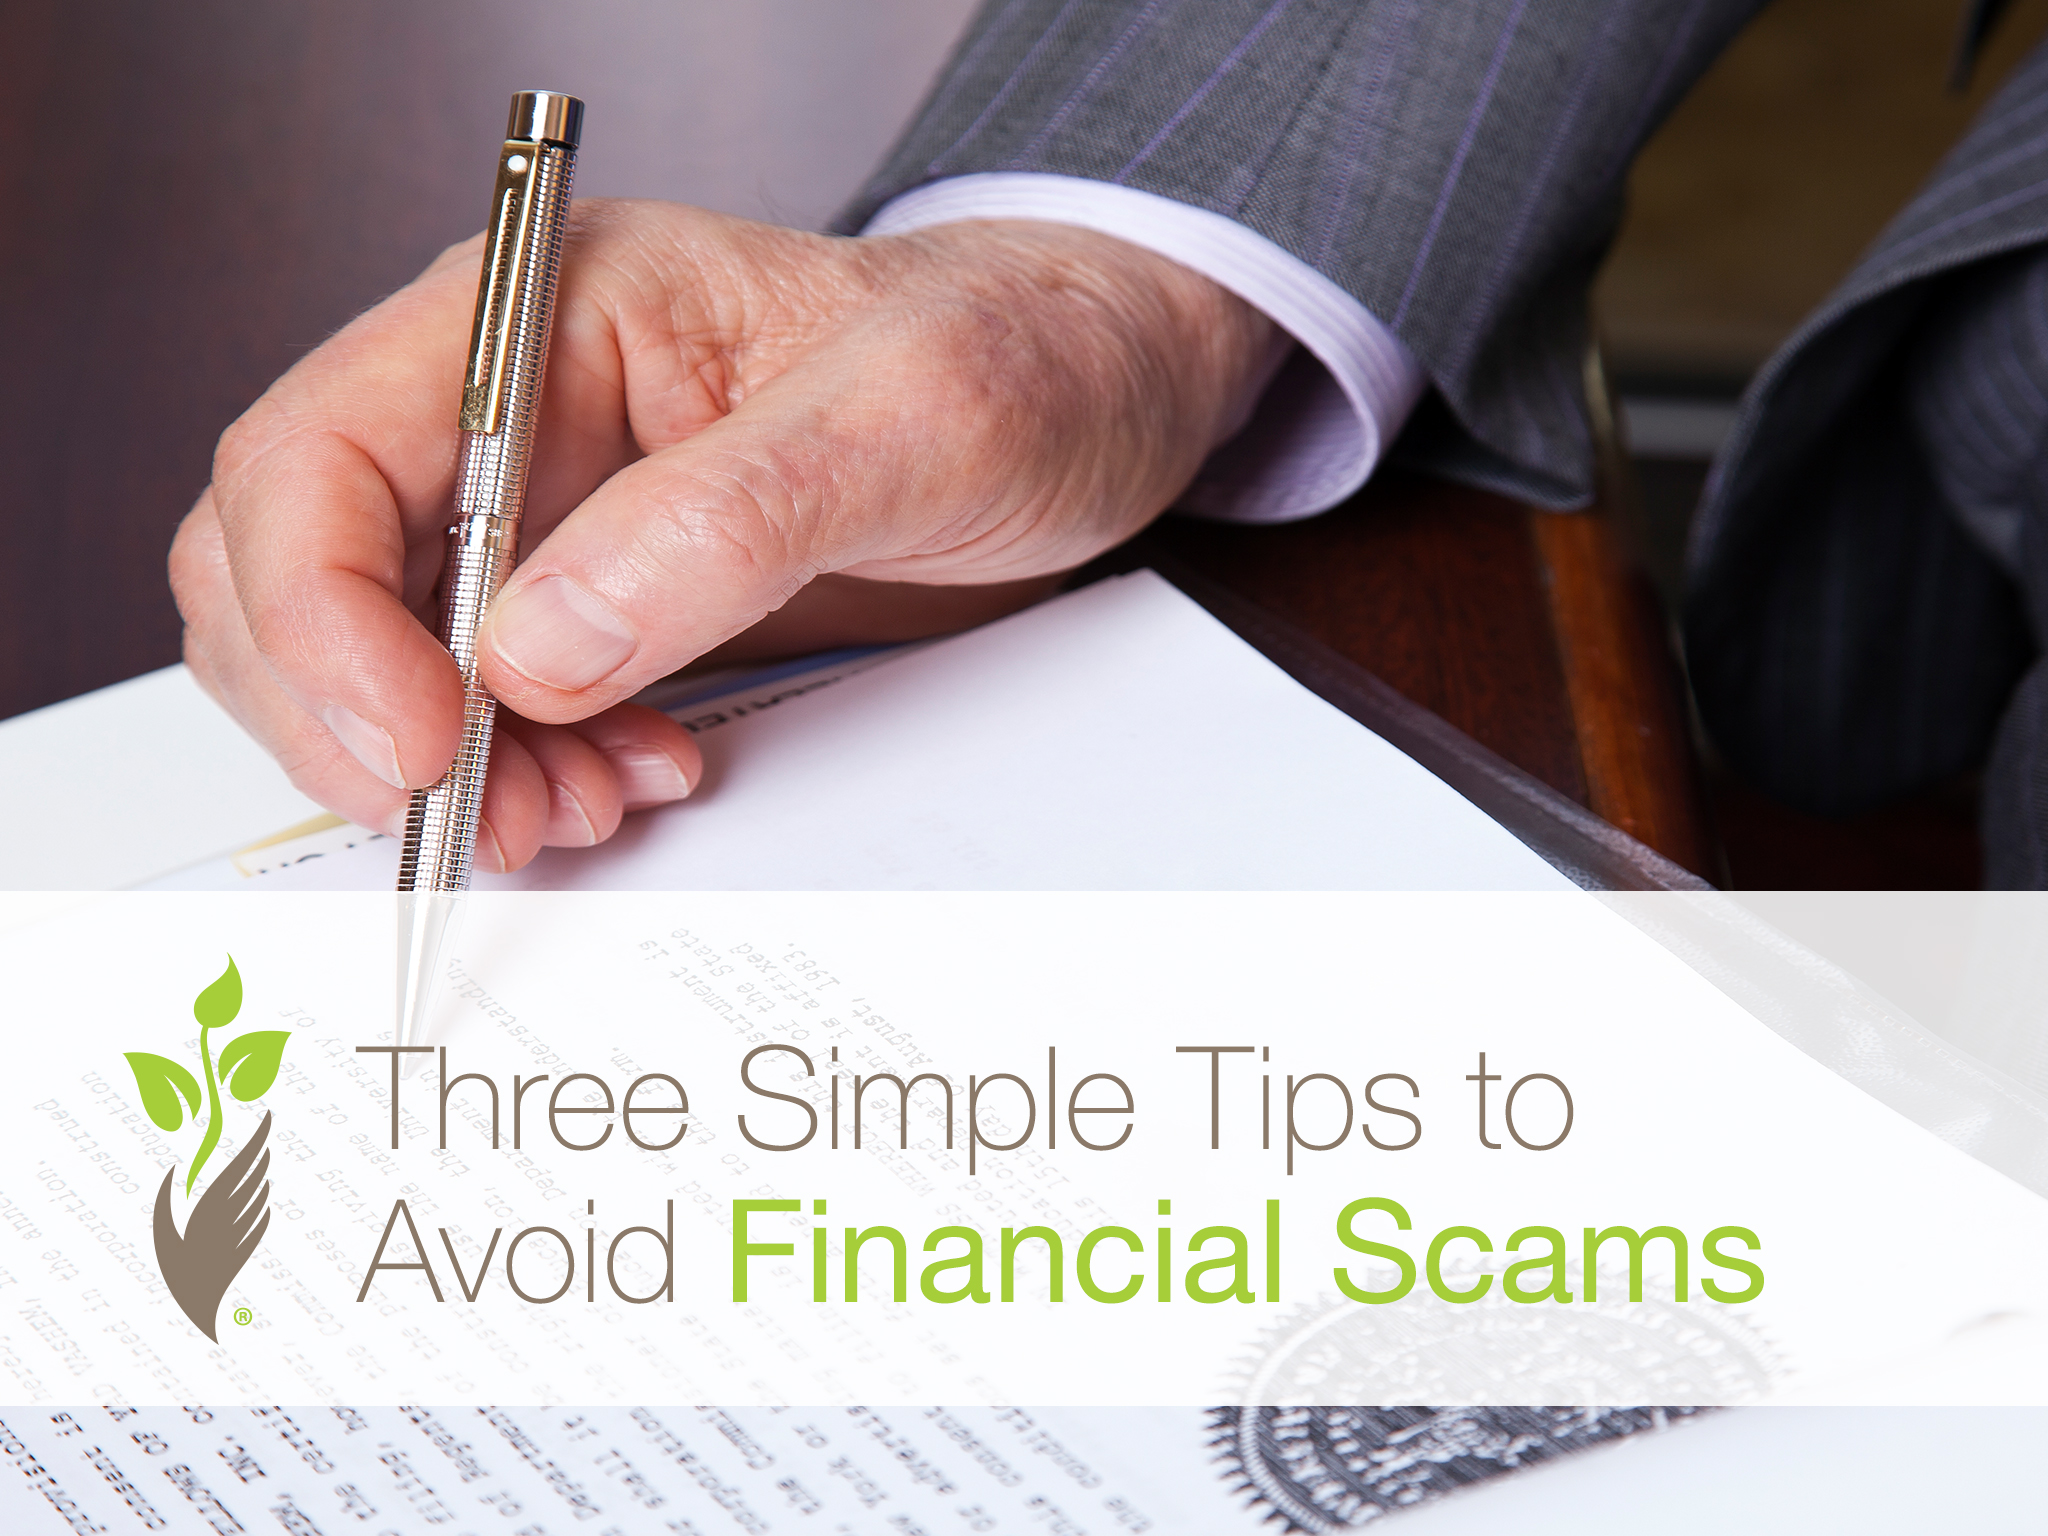 Three Simple Tips to Avoid Financial Scams